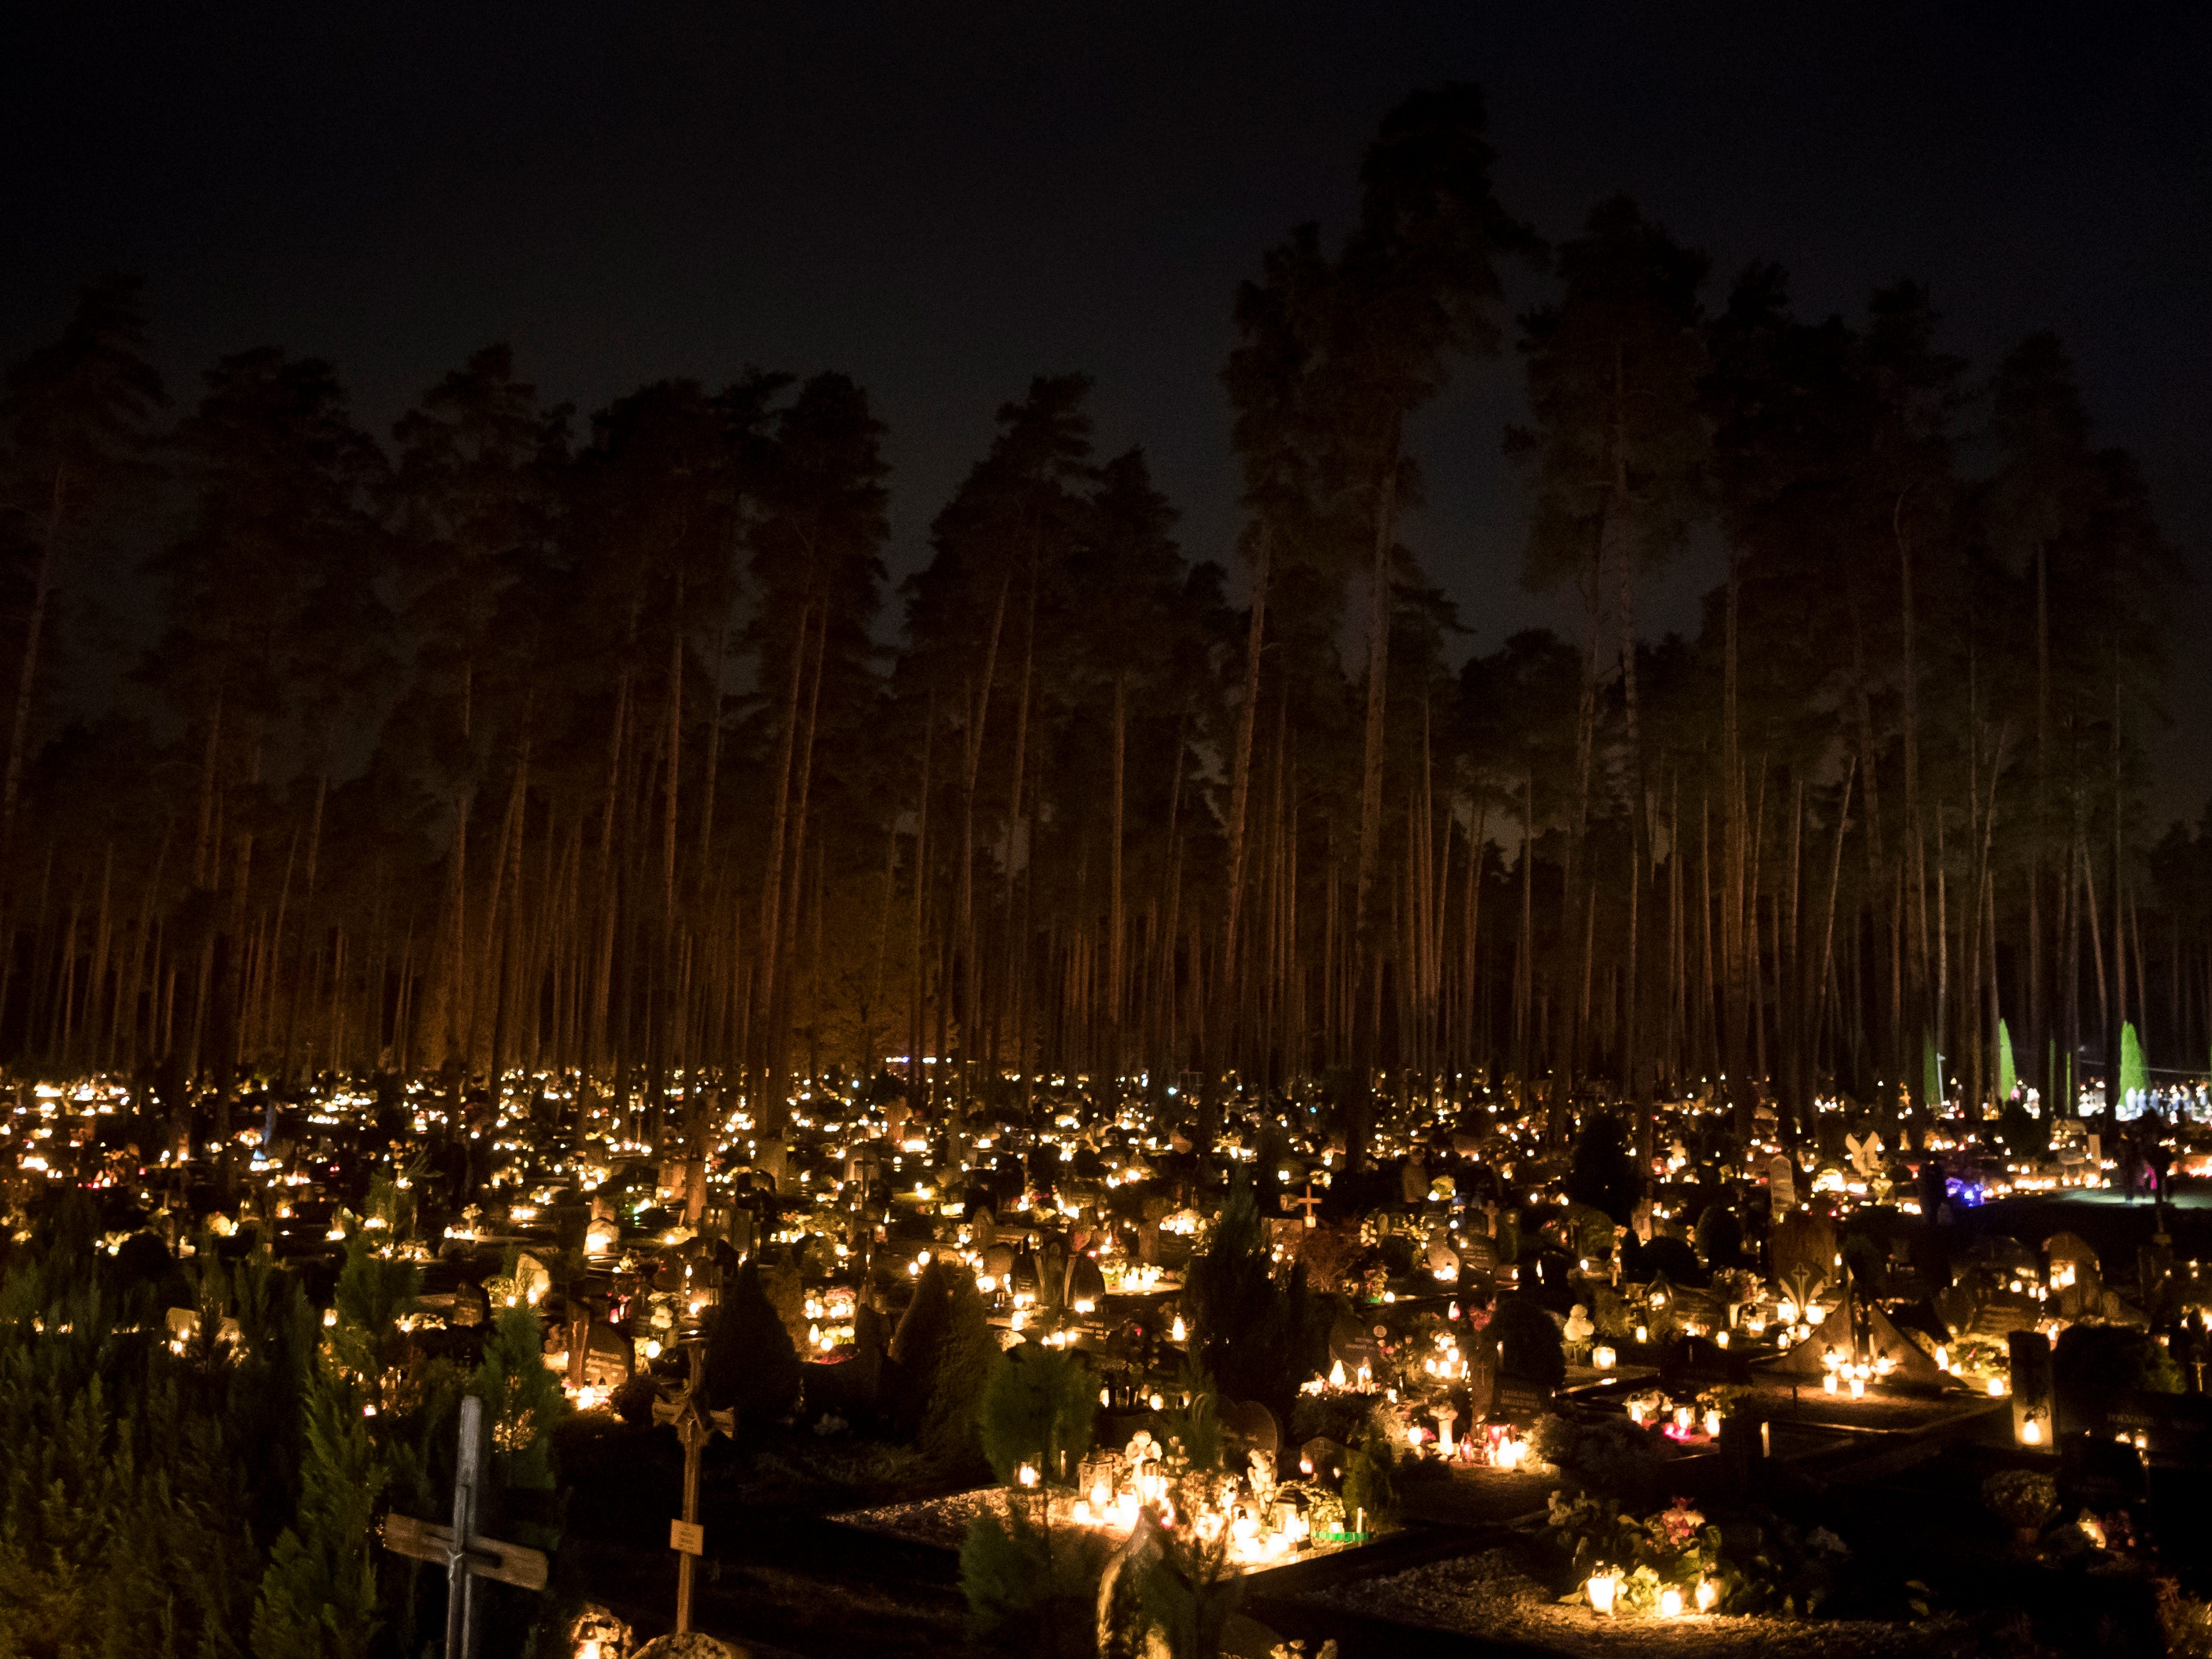 Relatives gather around graves illuminated by candles during All Saints Day at the cemetery in Vilnius, Lithuania, Thursday, Nov. 1, 2018. Candles illuminate tombstones across Europe as people commune with the souls of the dead on Thursday, November 1, 2018, observing one of the most sacred days in the Catholic calendar.